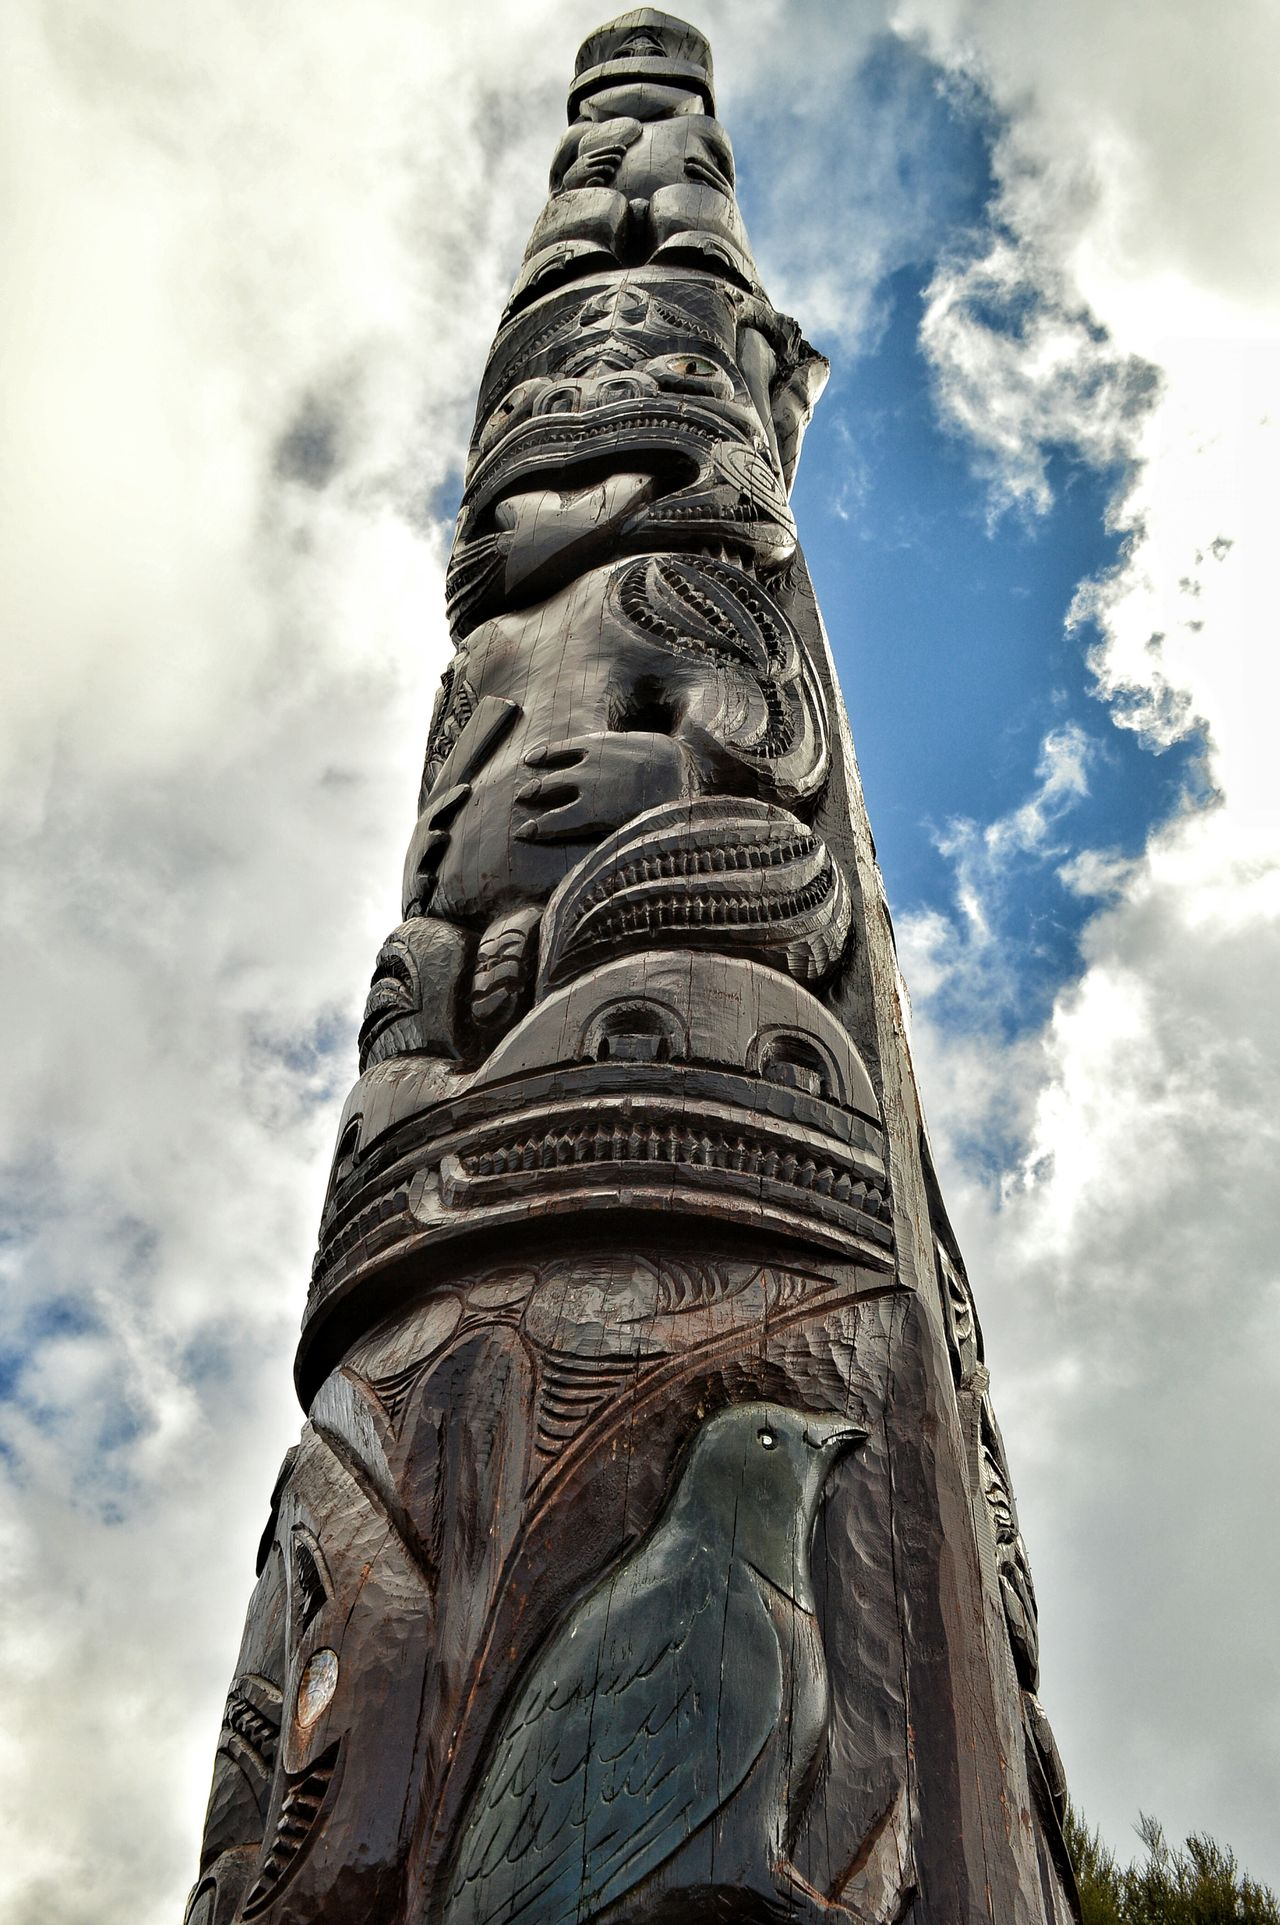 this carving shows the local peoples connection to Mt Taranaki and the land around it 🙌🐒😍🐨😊😊🙋🌈👍 Moari Carving Carving In Wood Pole Looking Up Native Pride New Zealand Scenery Kiwi Clicker Mt Taranaki Landscape. Eye4photography  EyeEm Masterclass Check This Out From My Point Of View Getting Inspired Indigenouspeople New Zealand Impressions Having Fun Hello World Tadaa Community EyeEm Best Shots Art Cultural Heritage Culture Exploring Photography